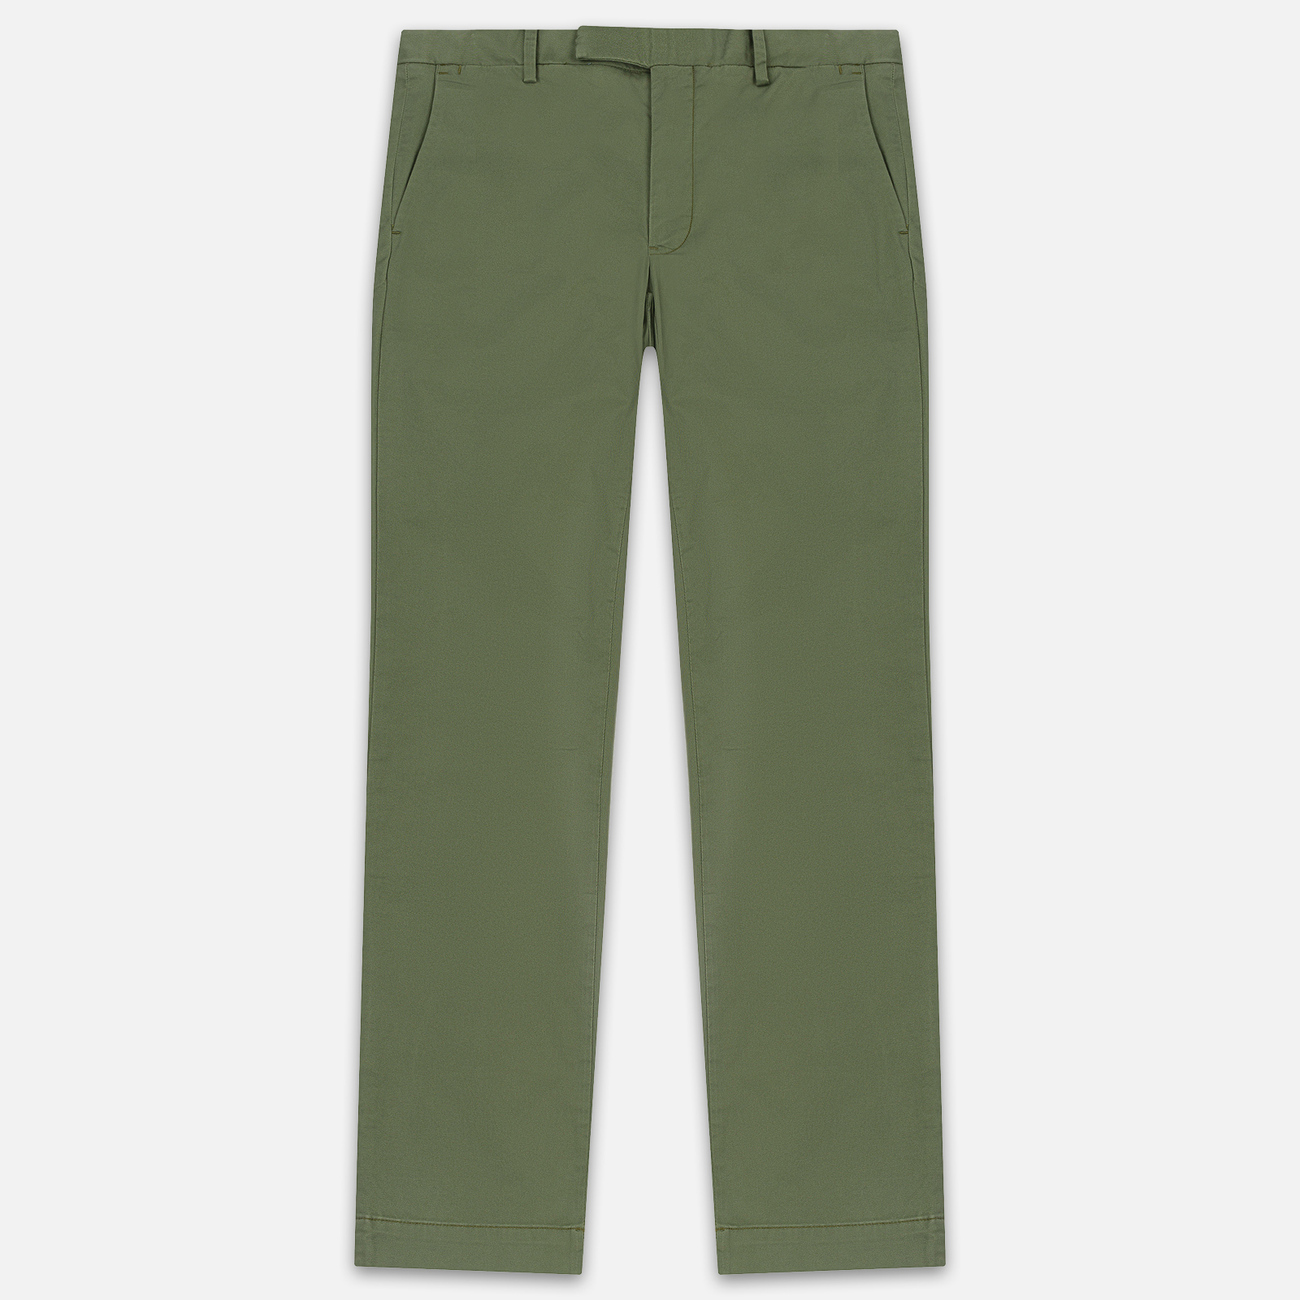 Мужские брюки Polo Ralph Lauren Tailored Slim Fit Lightweight Stretch Military Army Olive